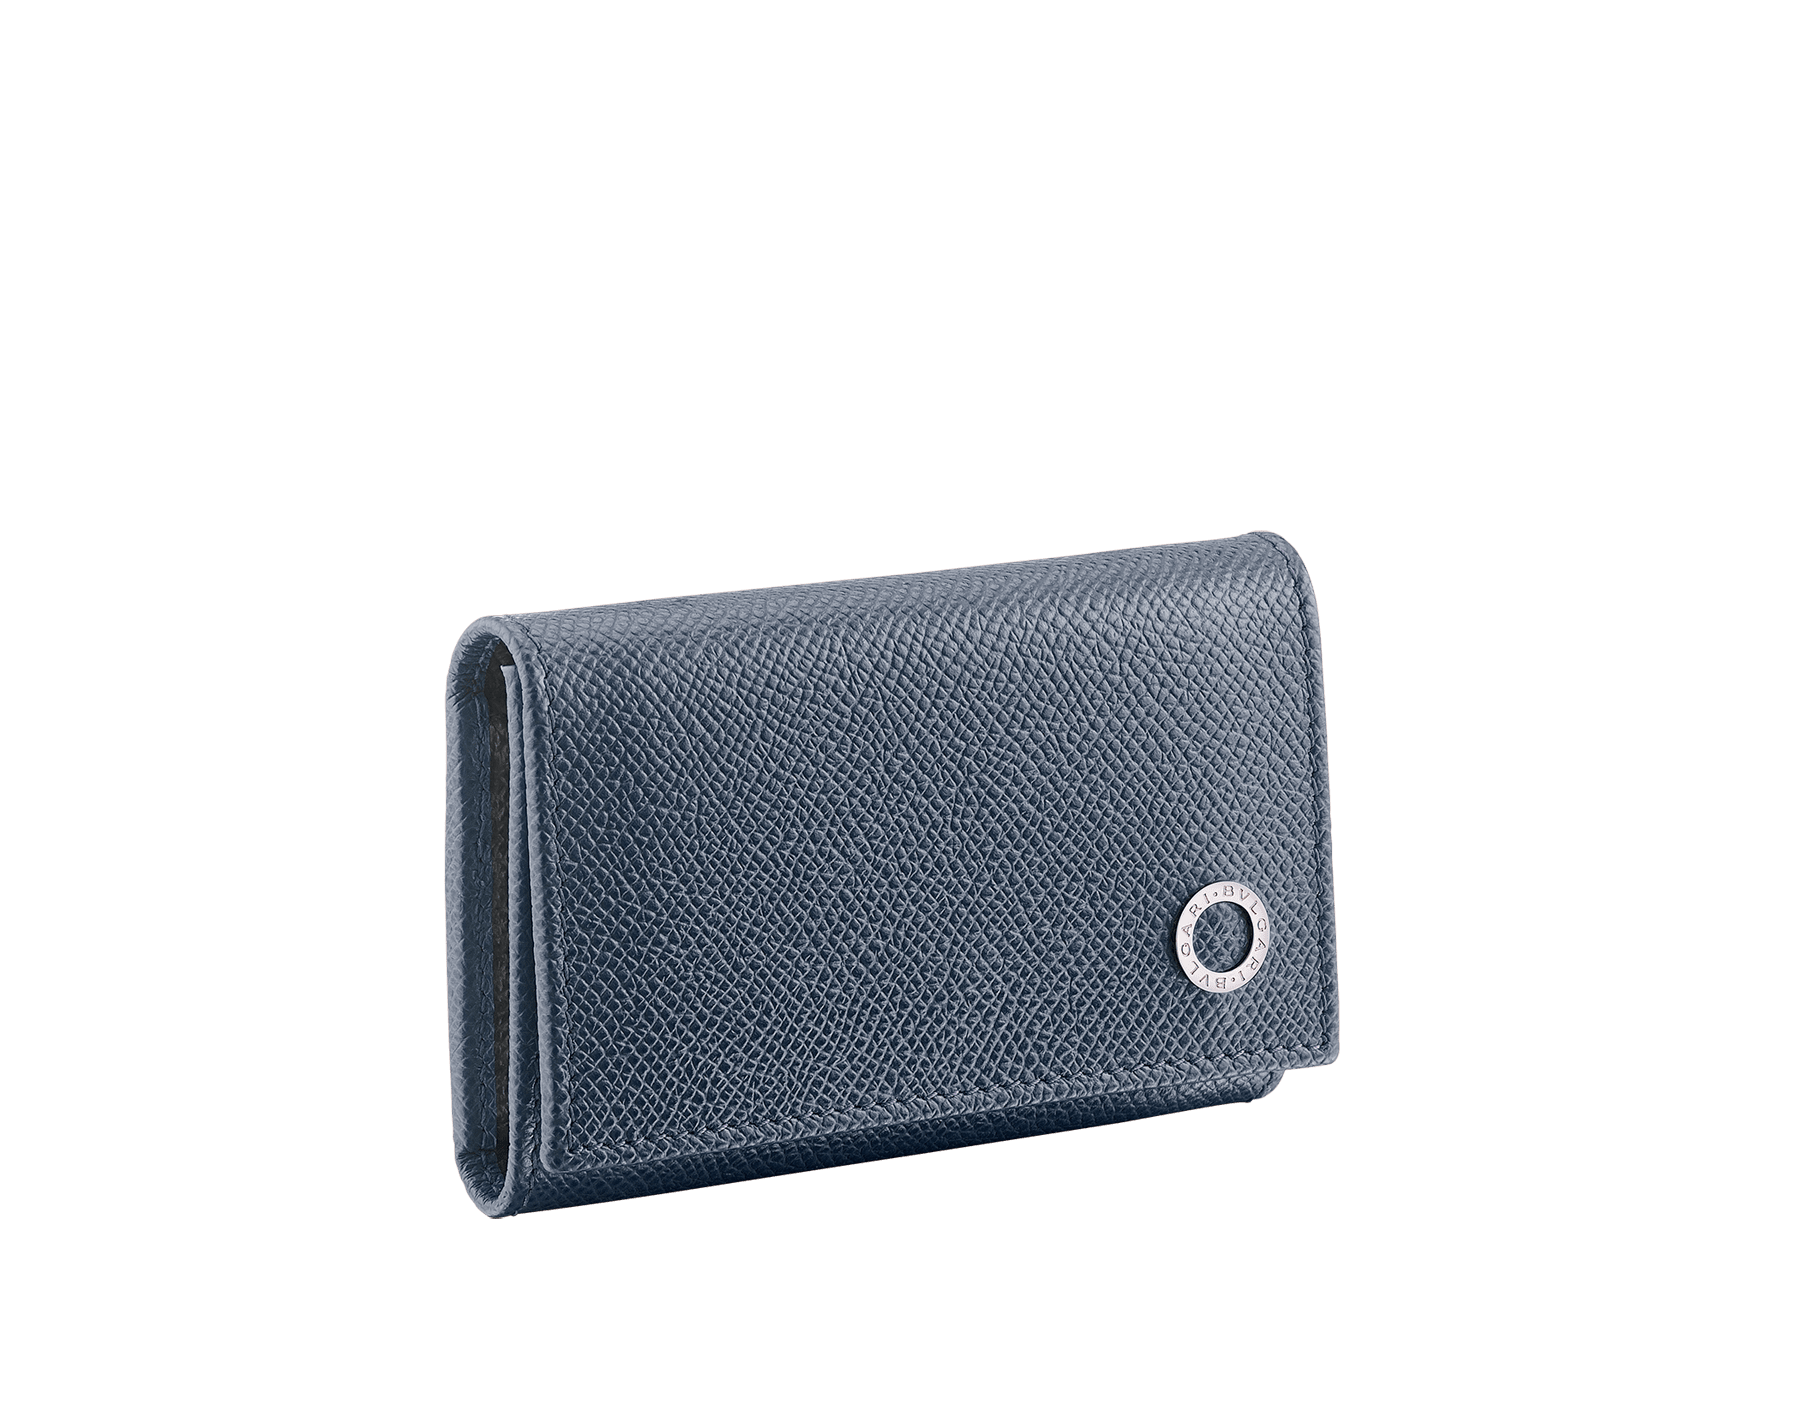 BVLGARI BVLGARI double key holder in denim sapphire and charcoal diamond grain calf leather. Detachable car key holder in palladium plated brass. 289133 image 1